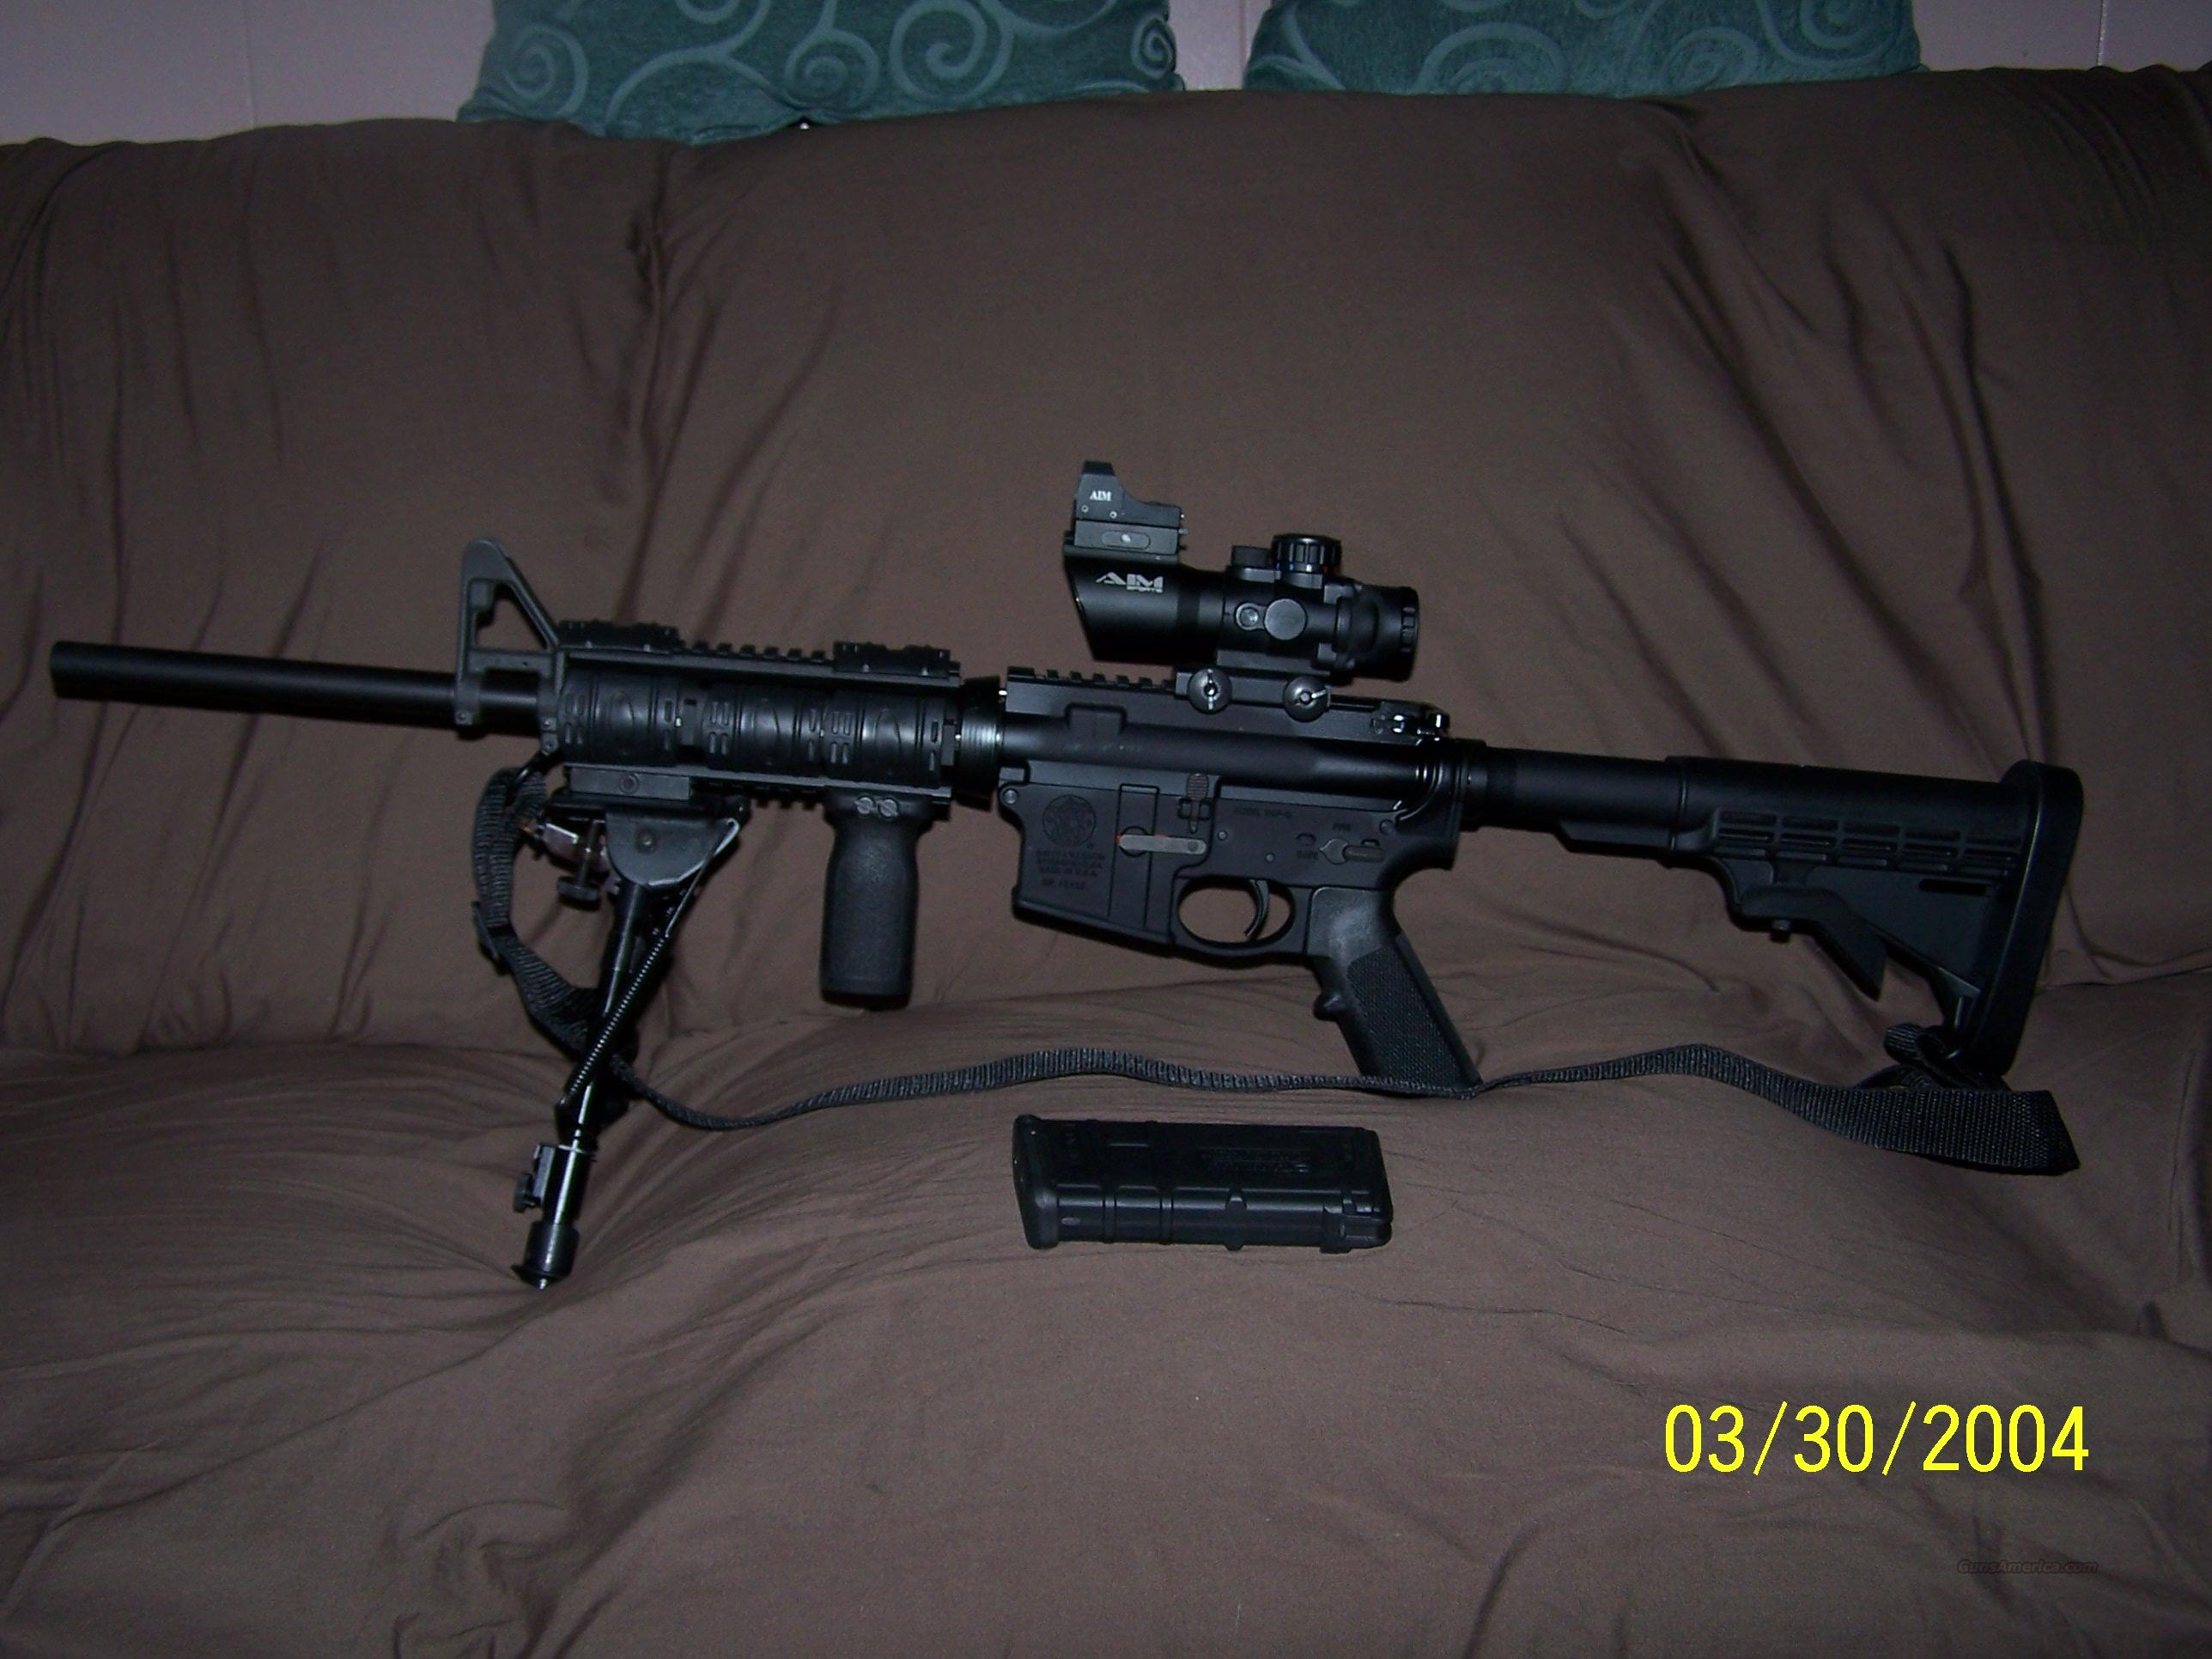 Smith & Wesson M&P15 Sport never shot   Guns > Rifles > Smith & Wesson Rifles > M&P